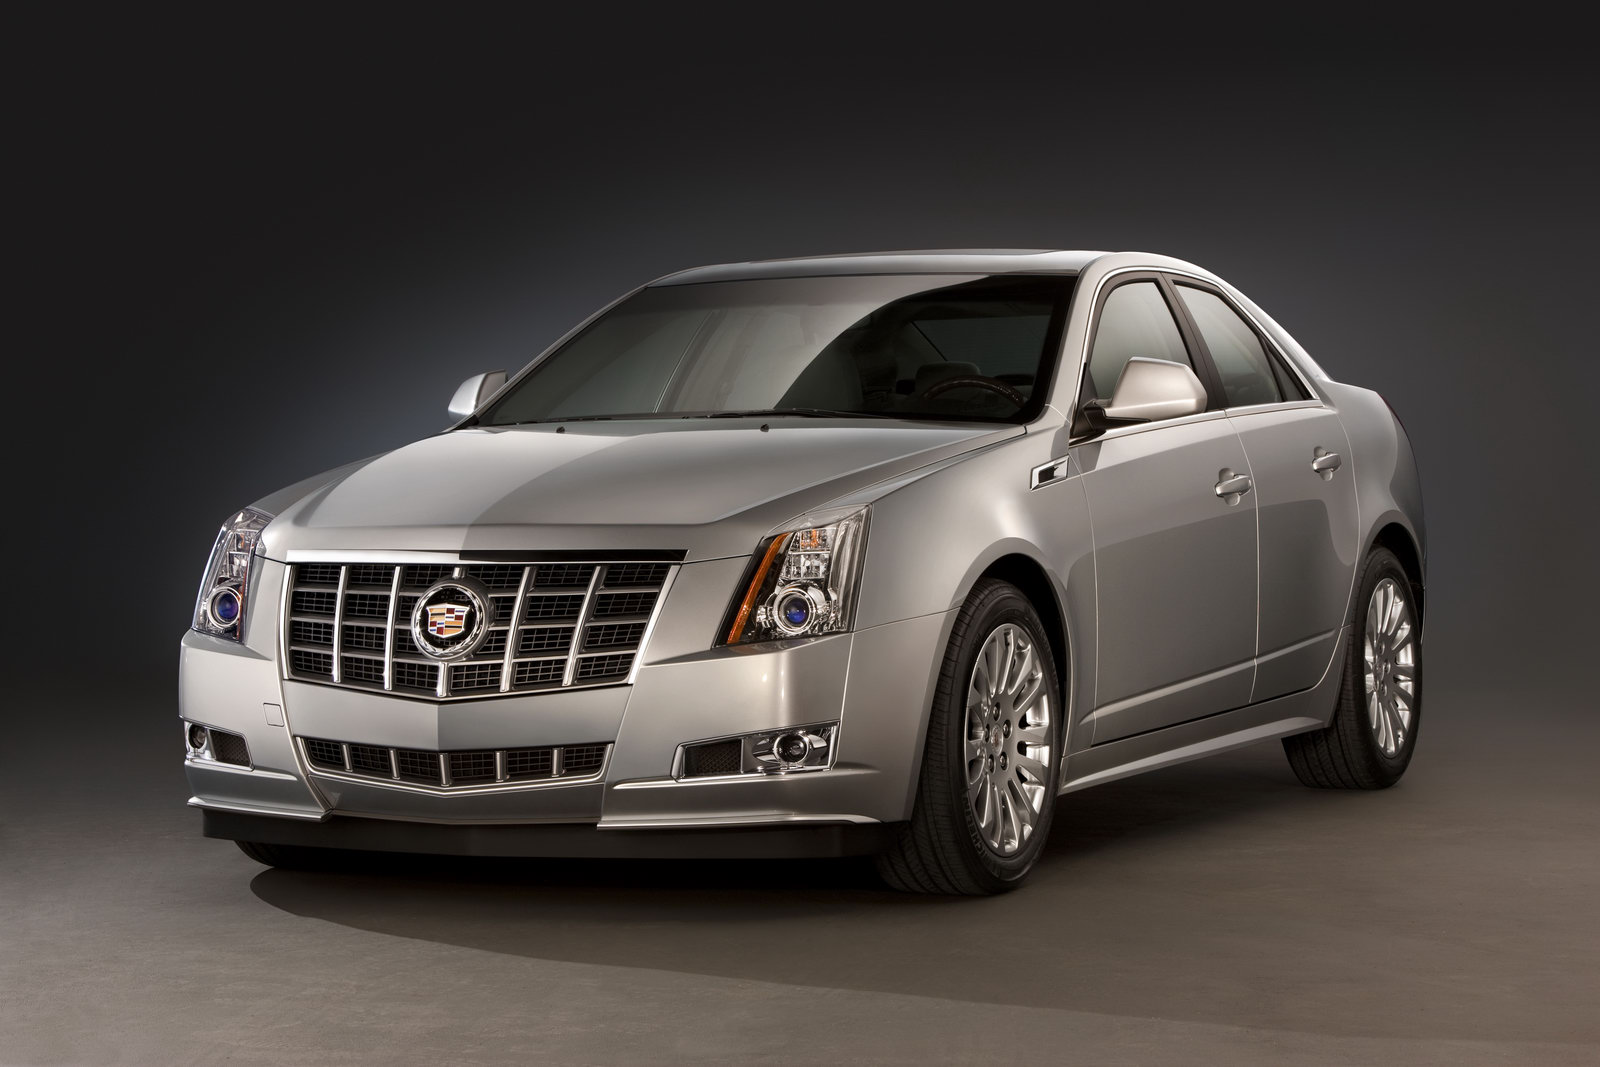 2012 Cadillac Cts Sedan With New Grille And More